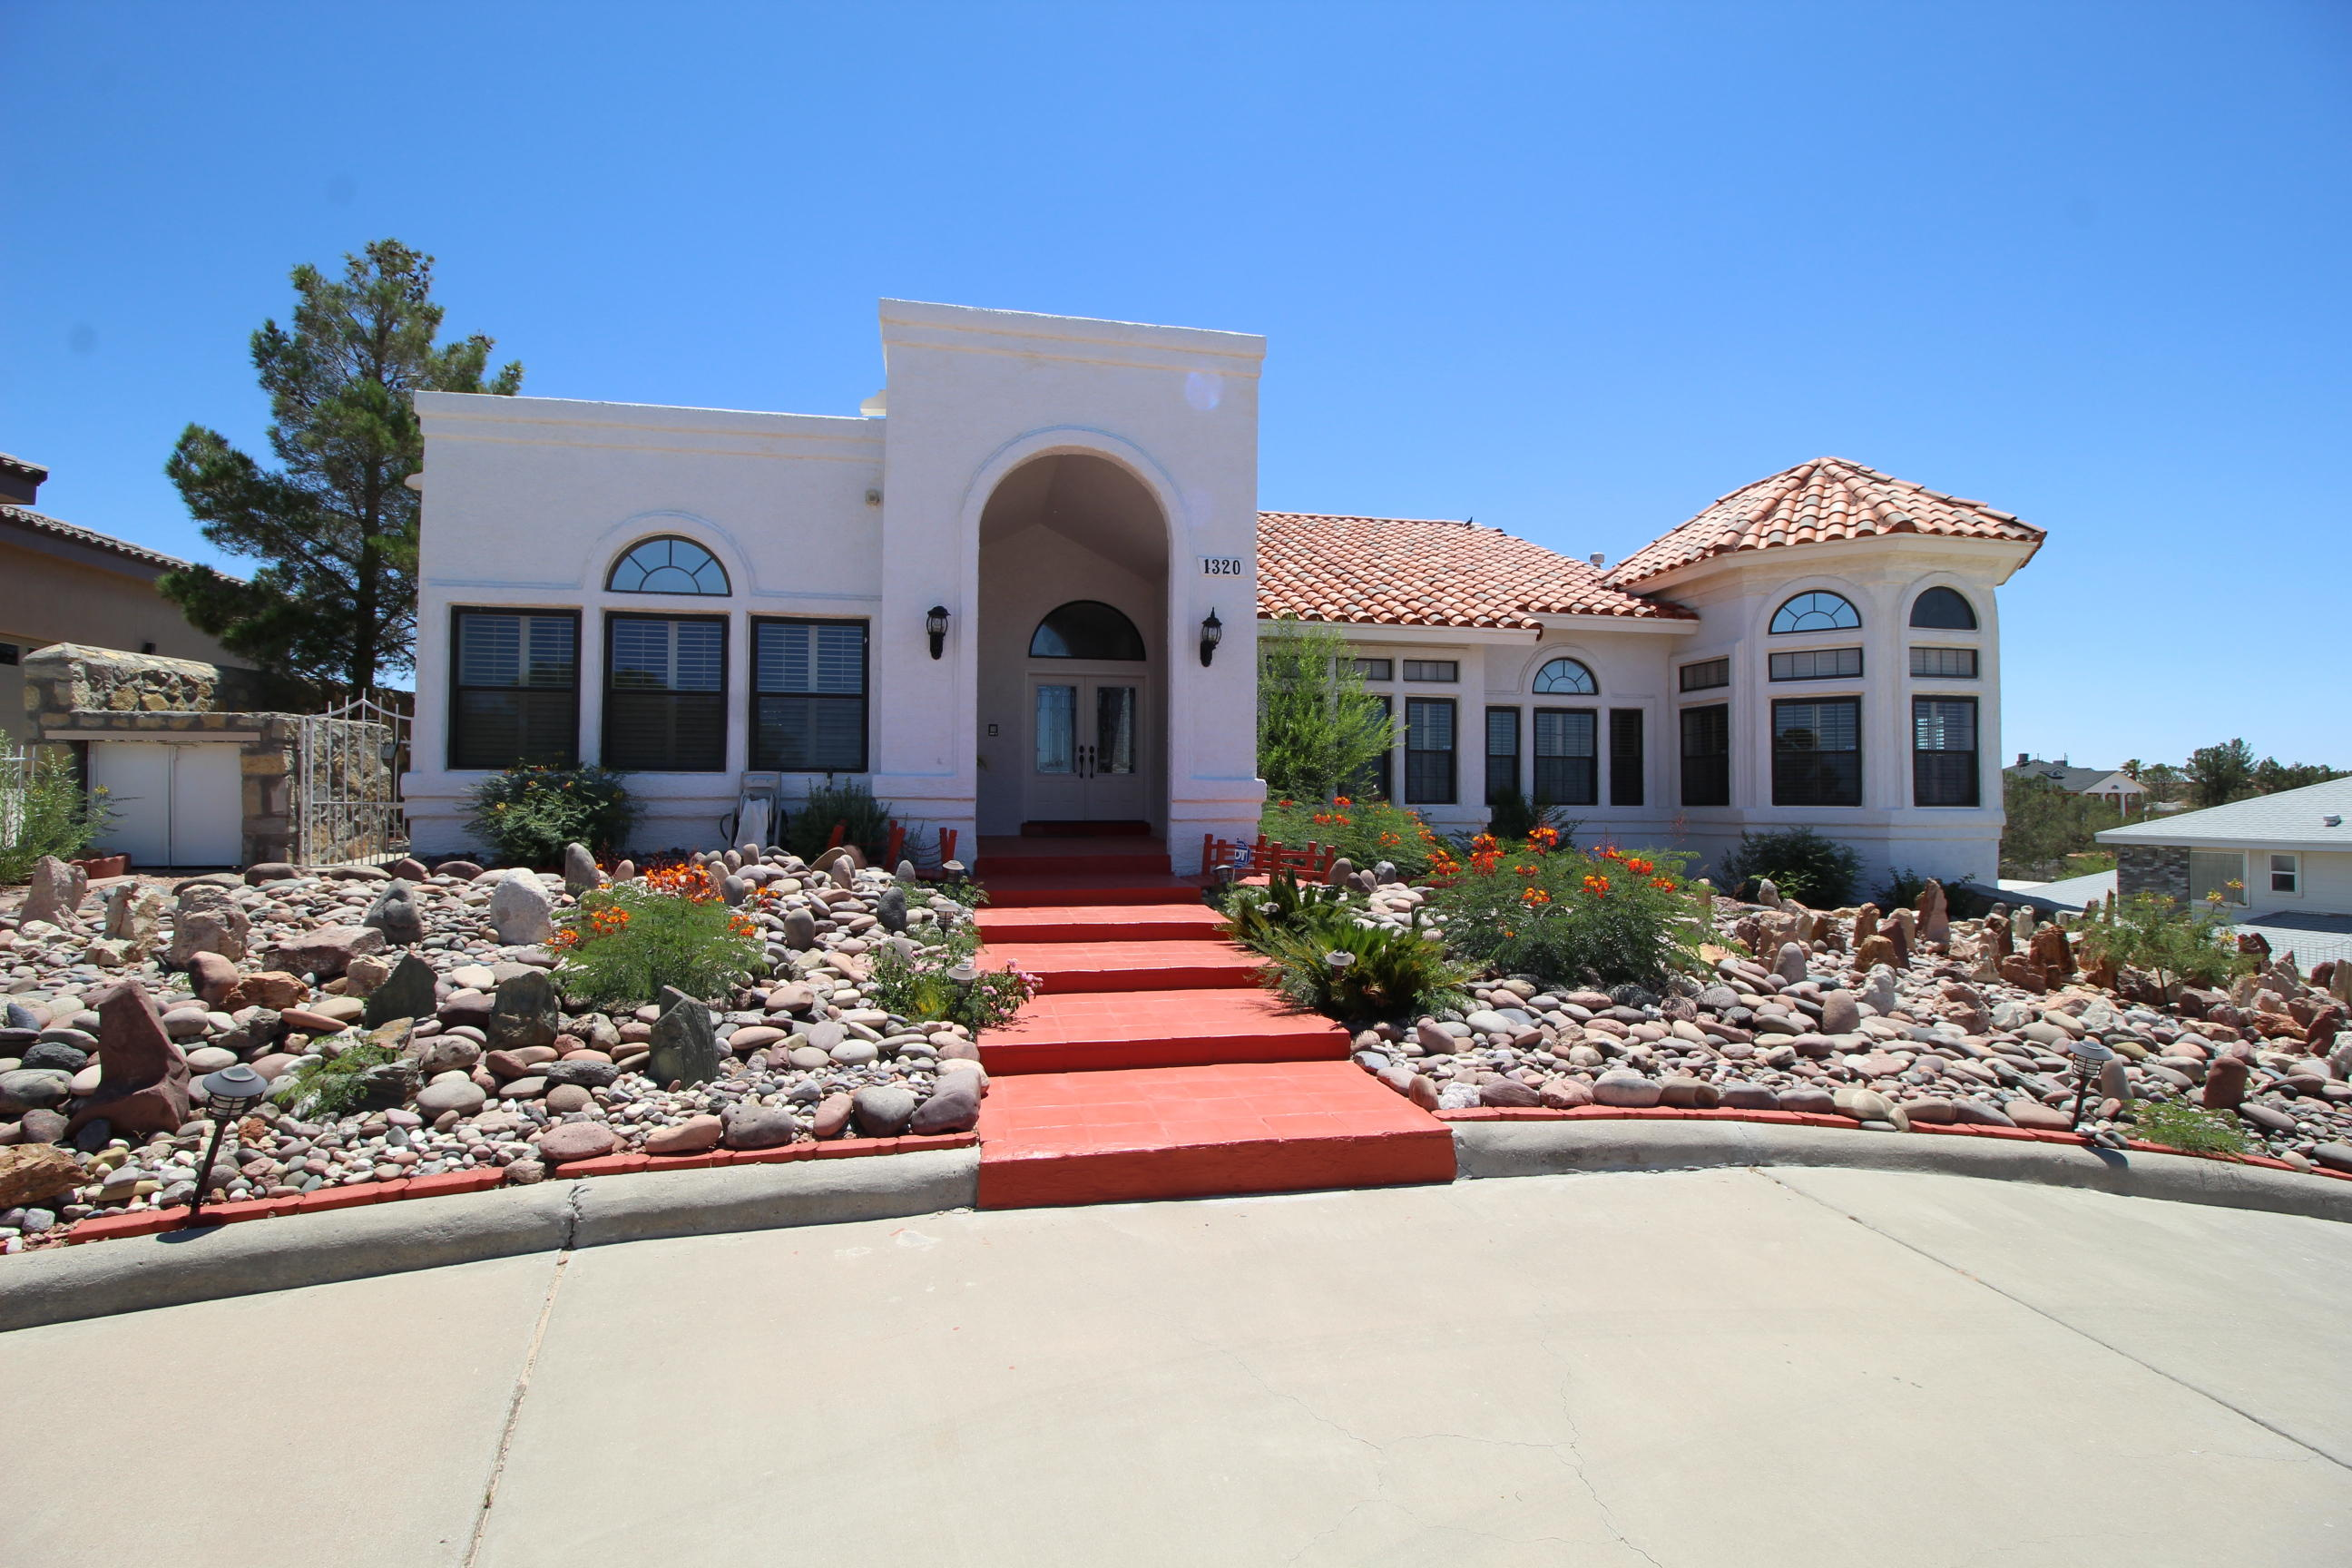 1320 LOMA VERDE, El Paso, Texas 79936, 4 Bedrooms Bedrooms, ,3 BathroomsBathrooms,Residential,For sale,LOMA VERDE,810569